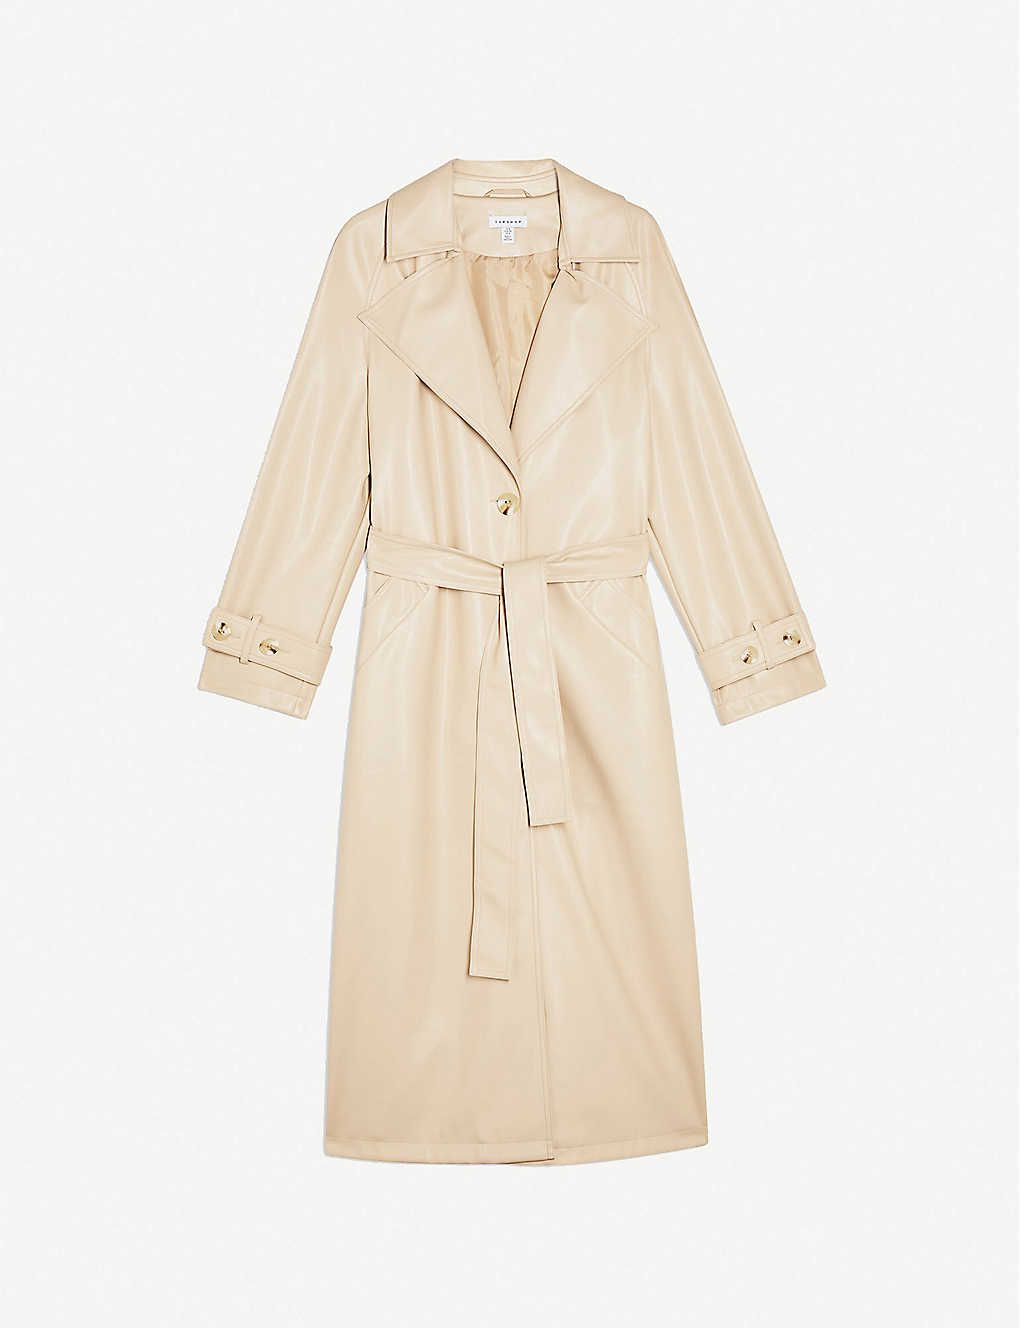 10 Camel Coats You'll Own Forever Camel Colored Outerwear